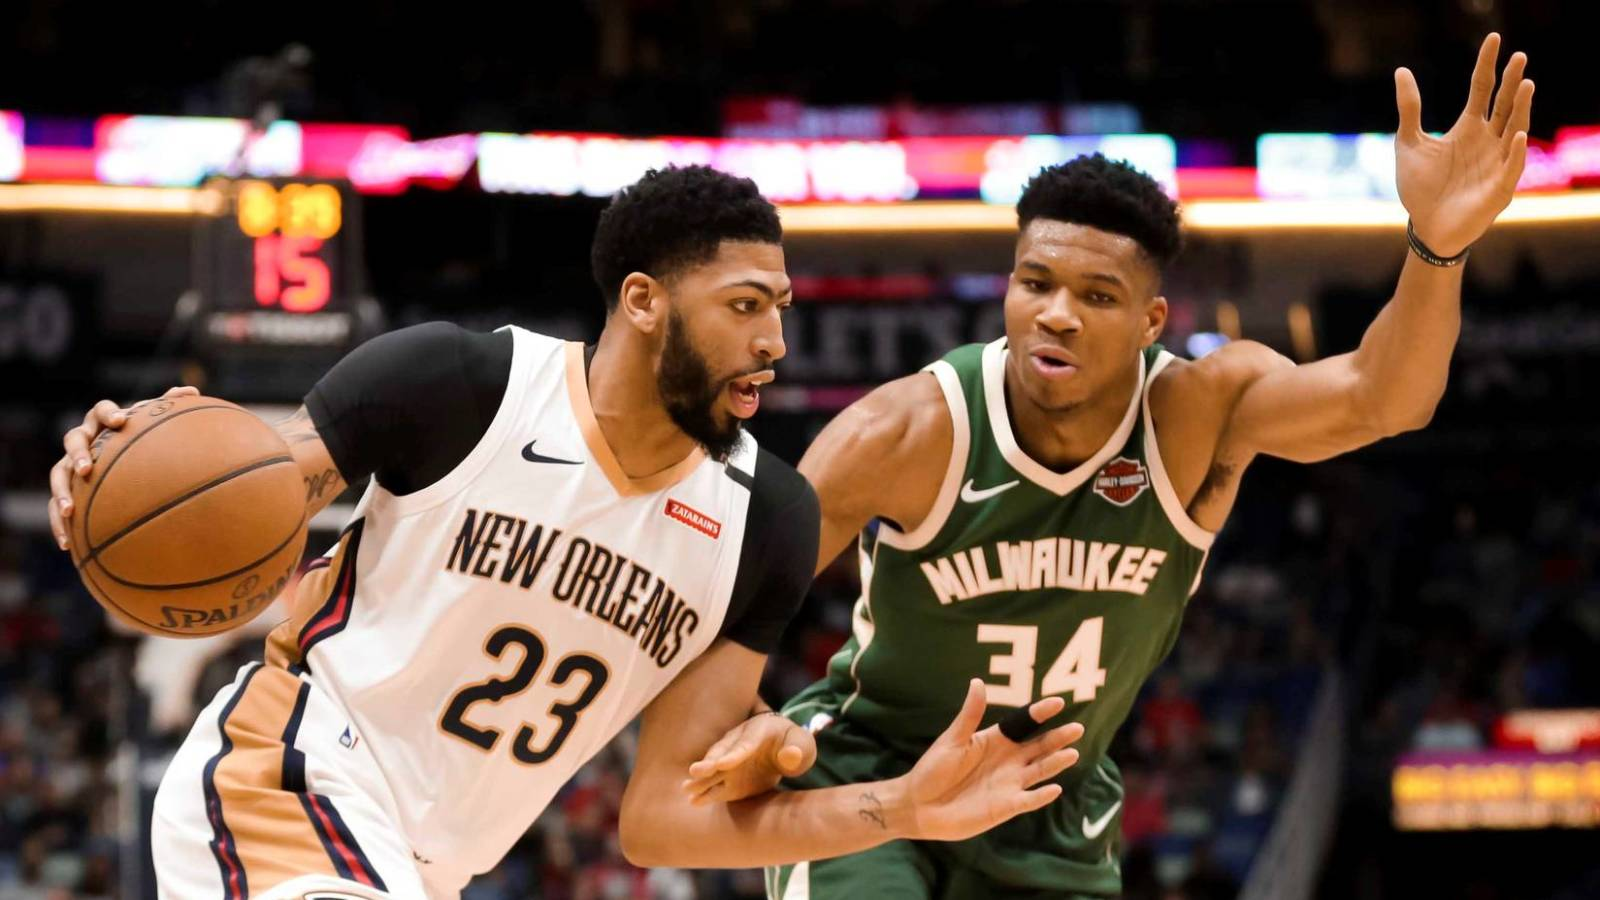 2004 Shaq deal gives Bucks a blueprint for potential Giannis trade